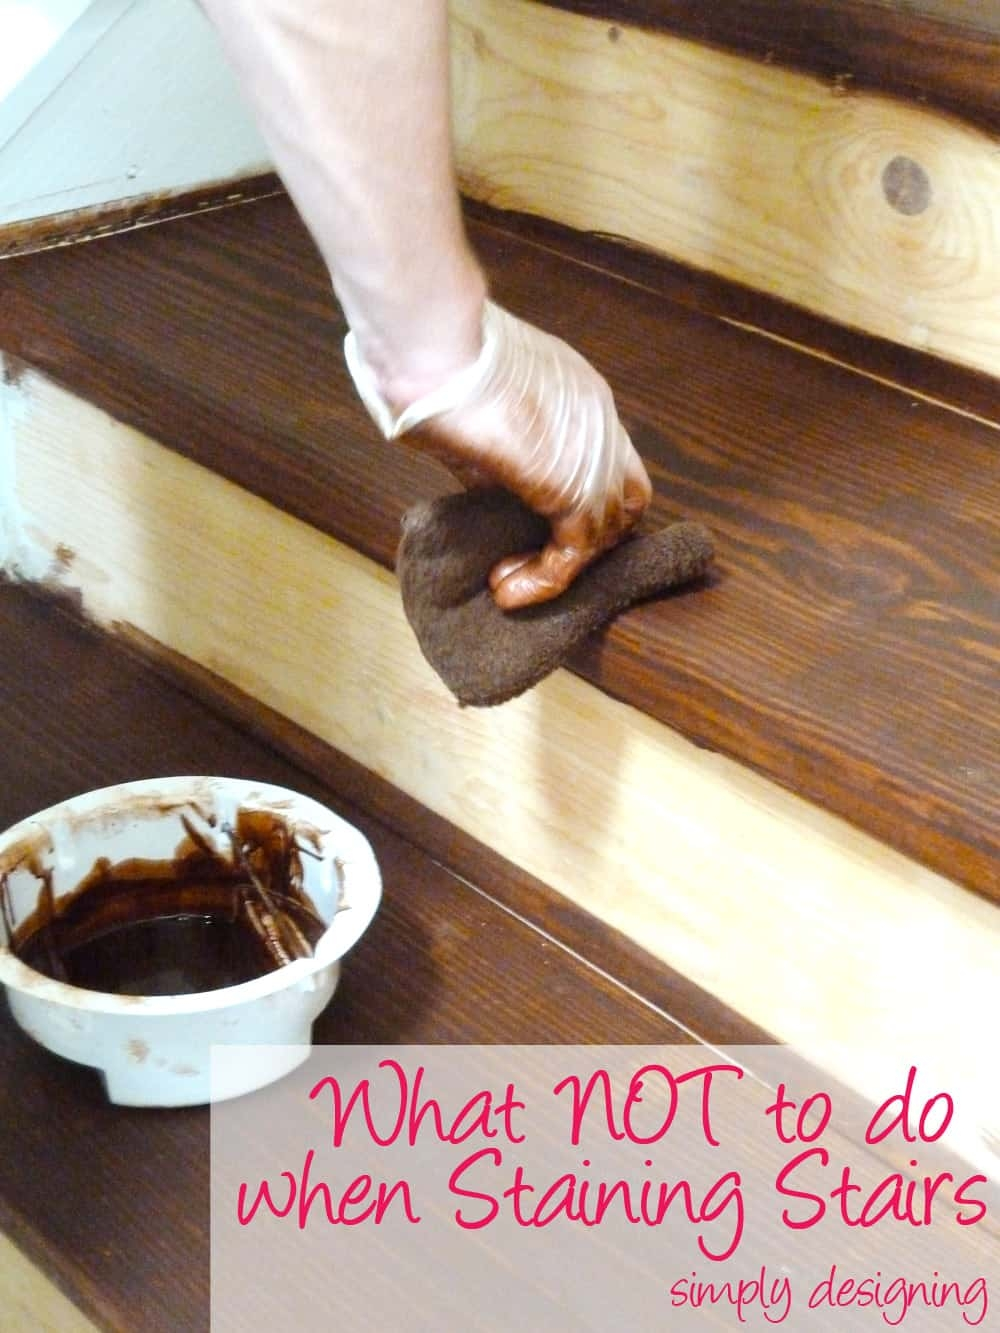 Staircase Make Over Part 2 Mistakes To Avoid And How To Do It Right | Staining Pine Stair Treads | Painting | White Pine | Wooden | Tile | Stained White Oak